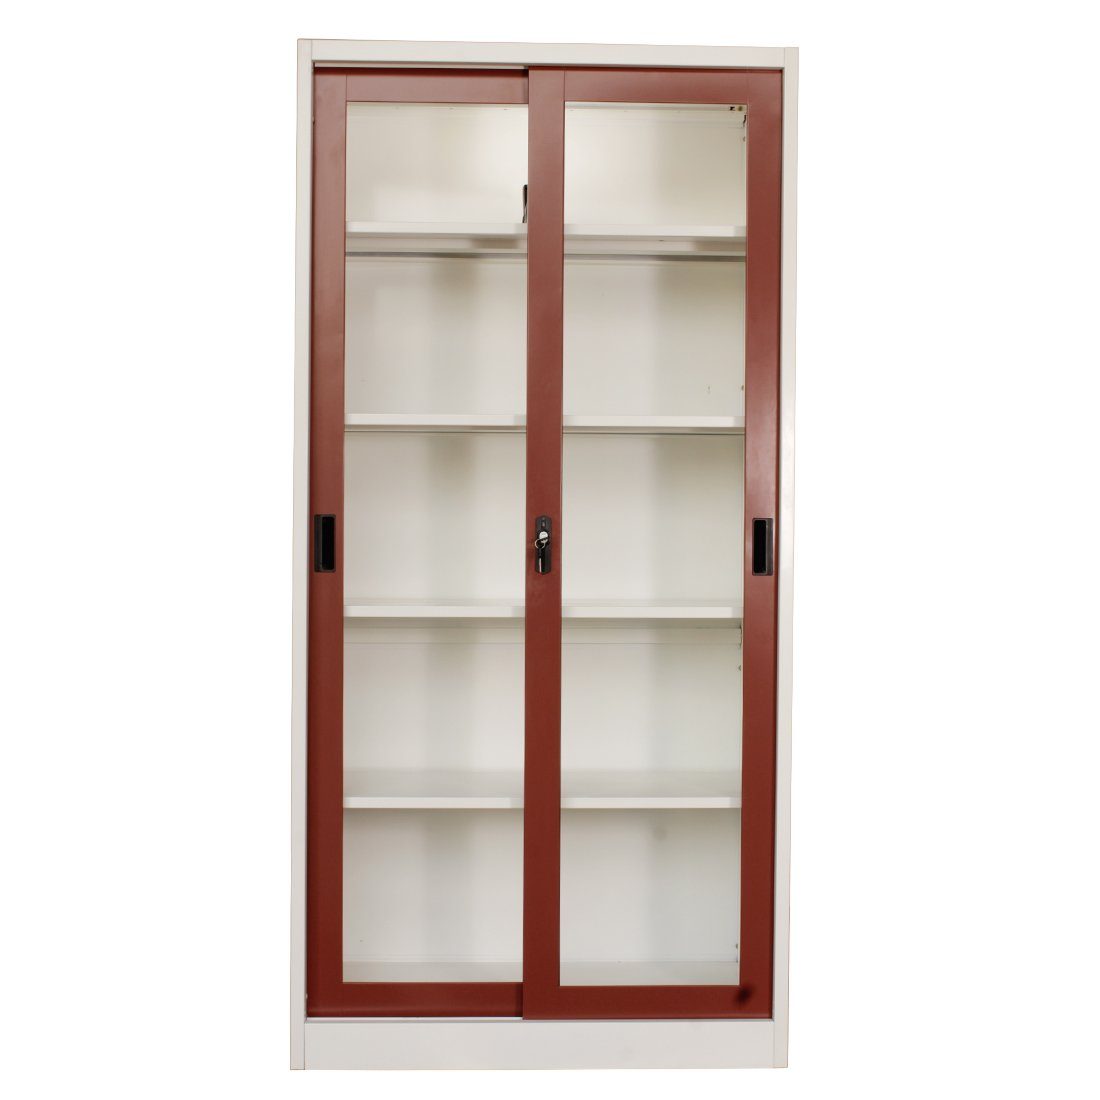 Woodness Close Cameron Book Shelf (Glossy Finish, Maroon)